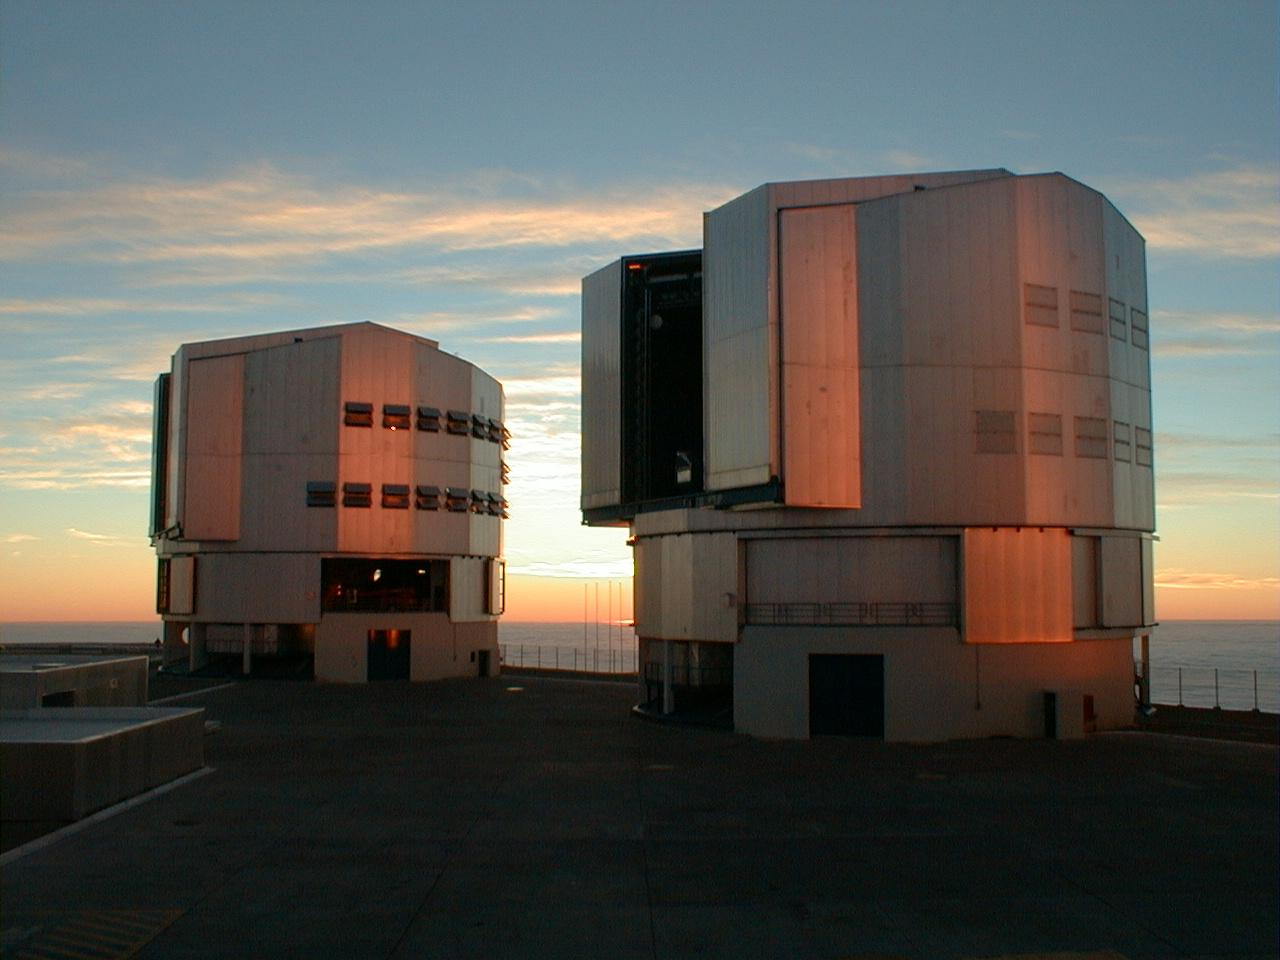 Télescopes de l'infrarouge